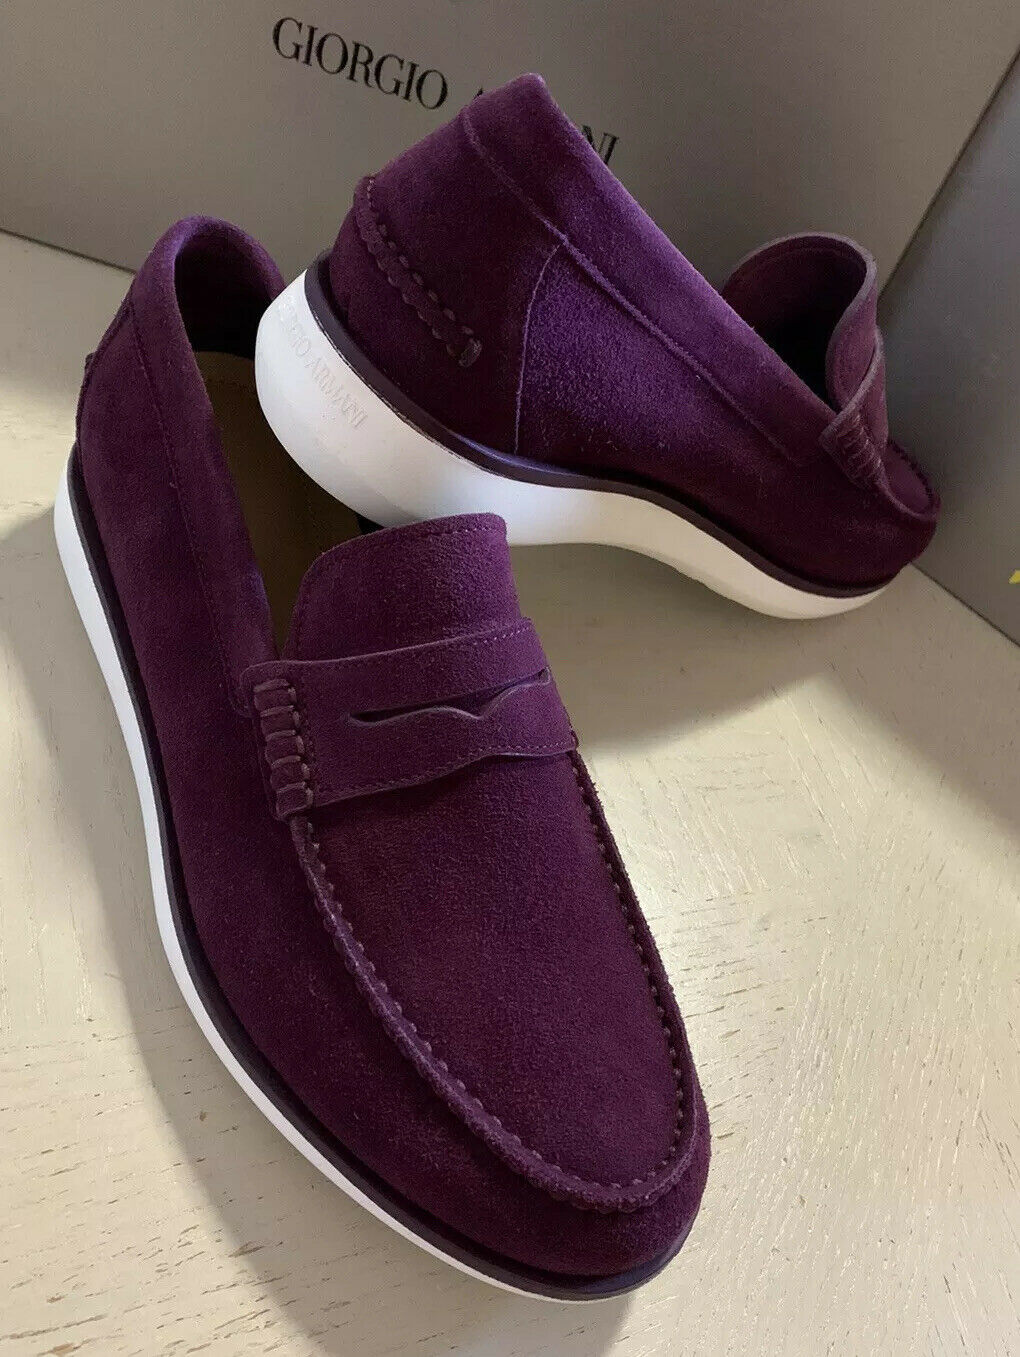 New $925 Giorgio Armani Mens Suede Loafers Shoes Burgundy 12 US /11 UK X2A321